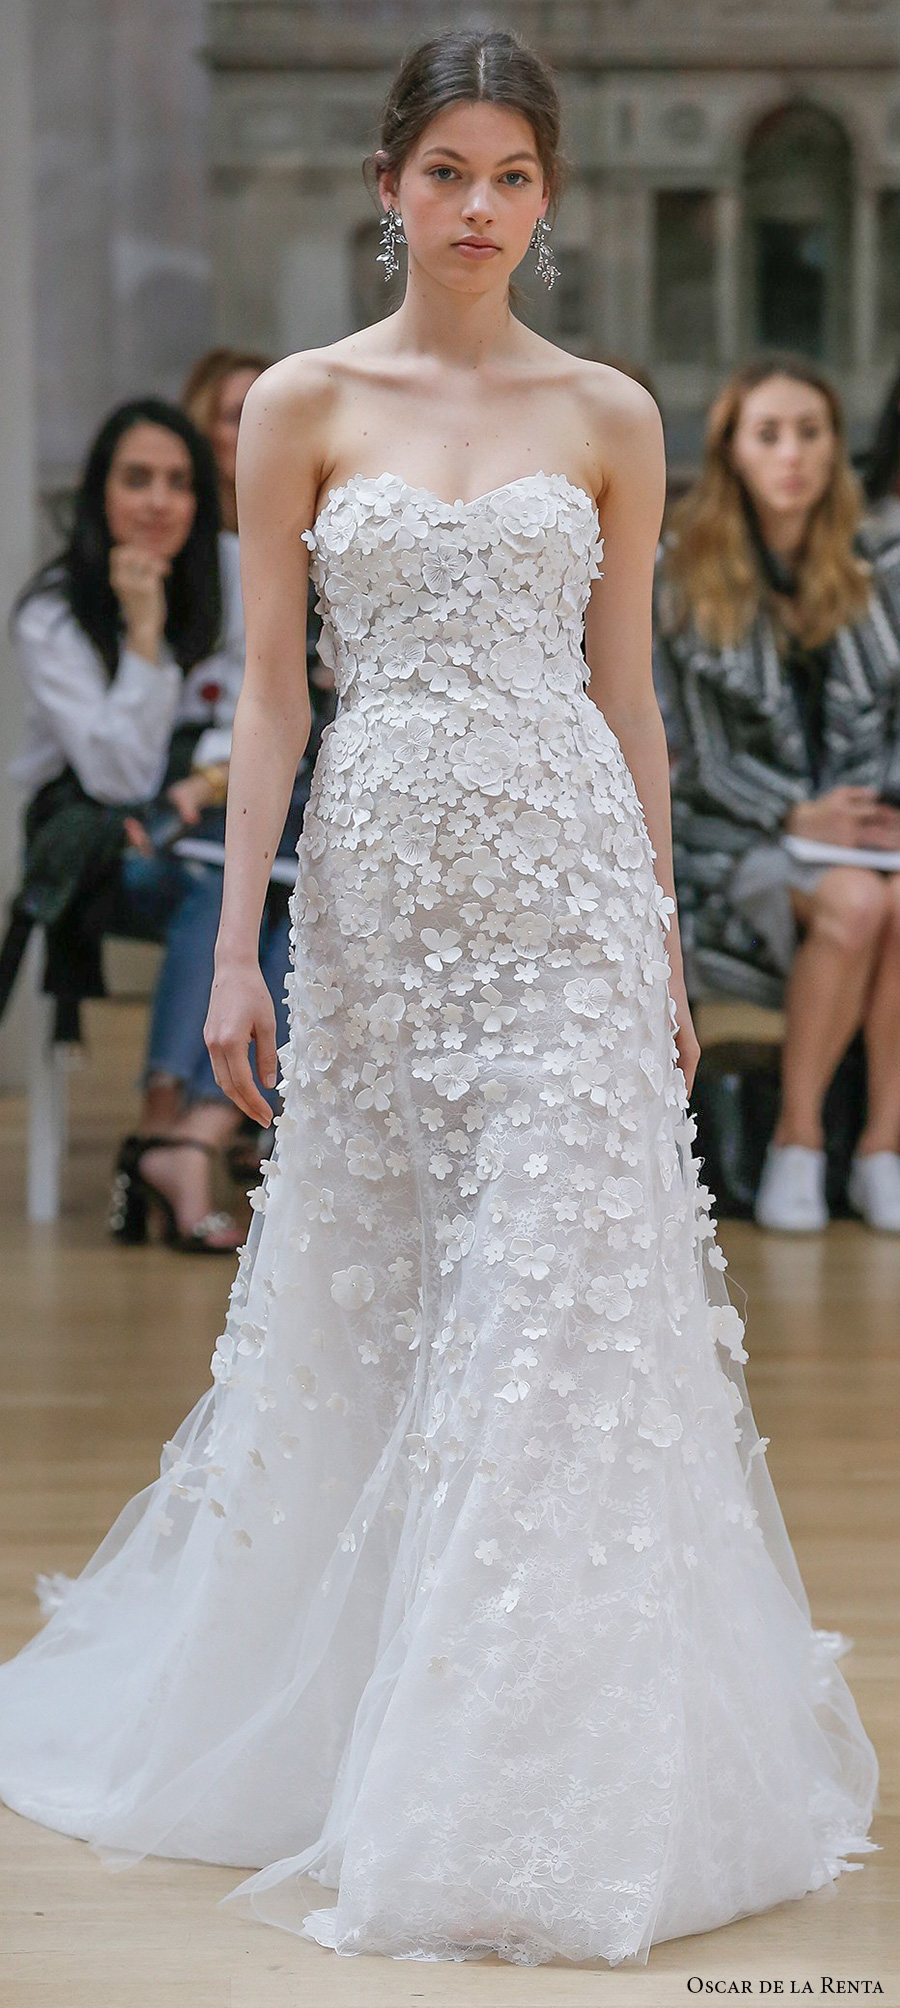 oscar de la renta spring 2018 wedding dresses new york